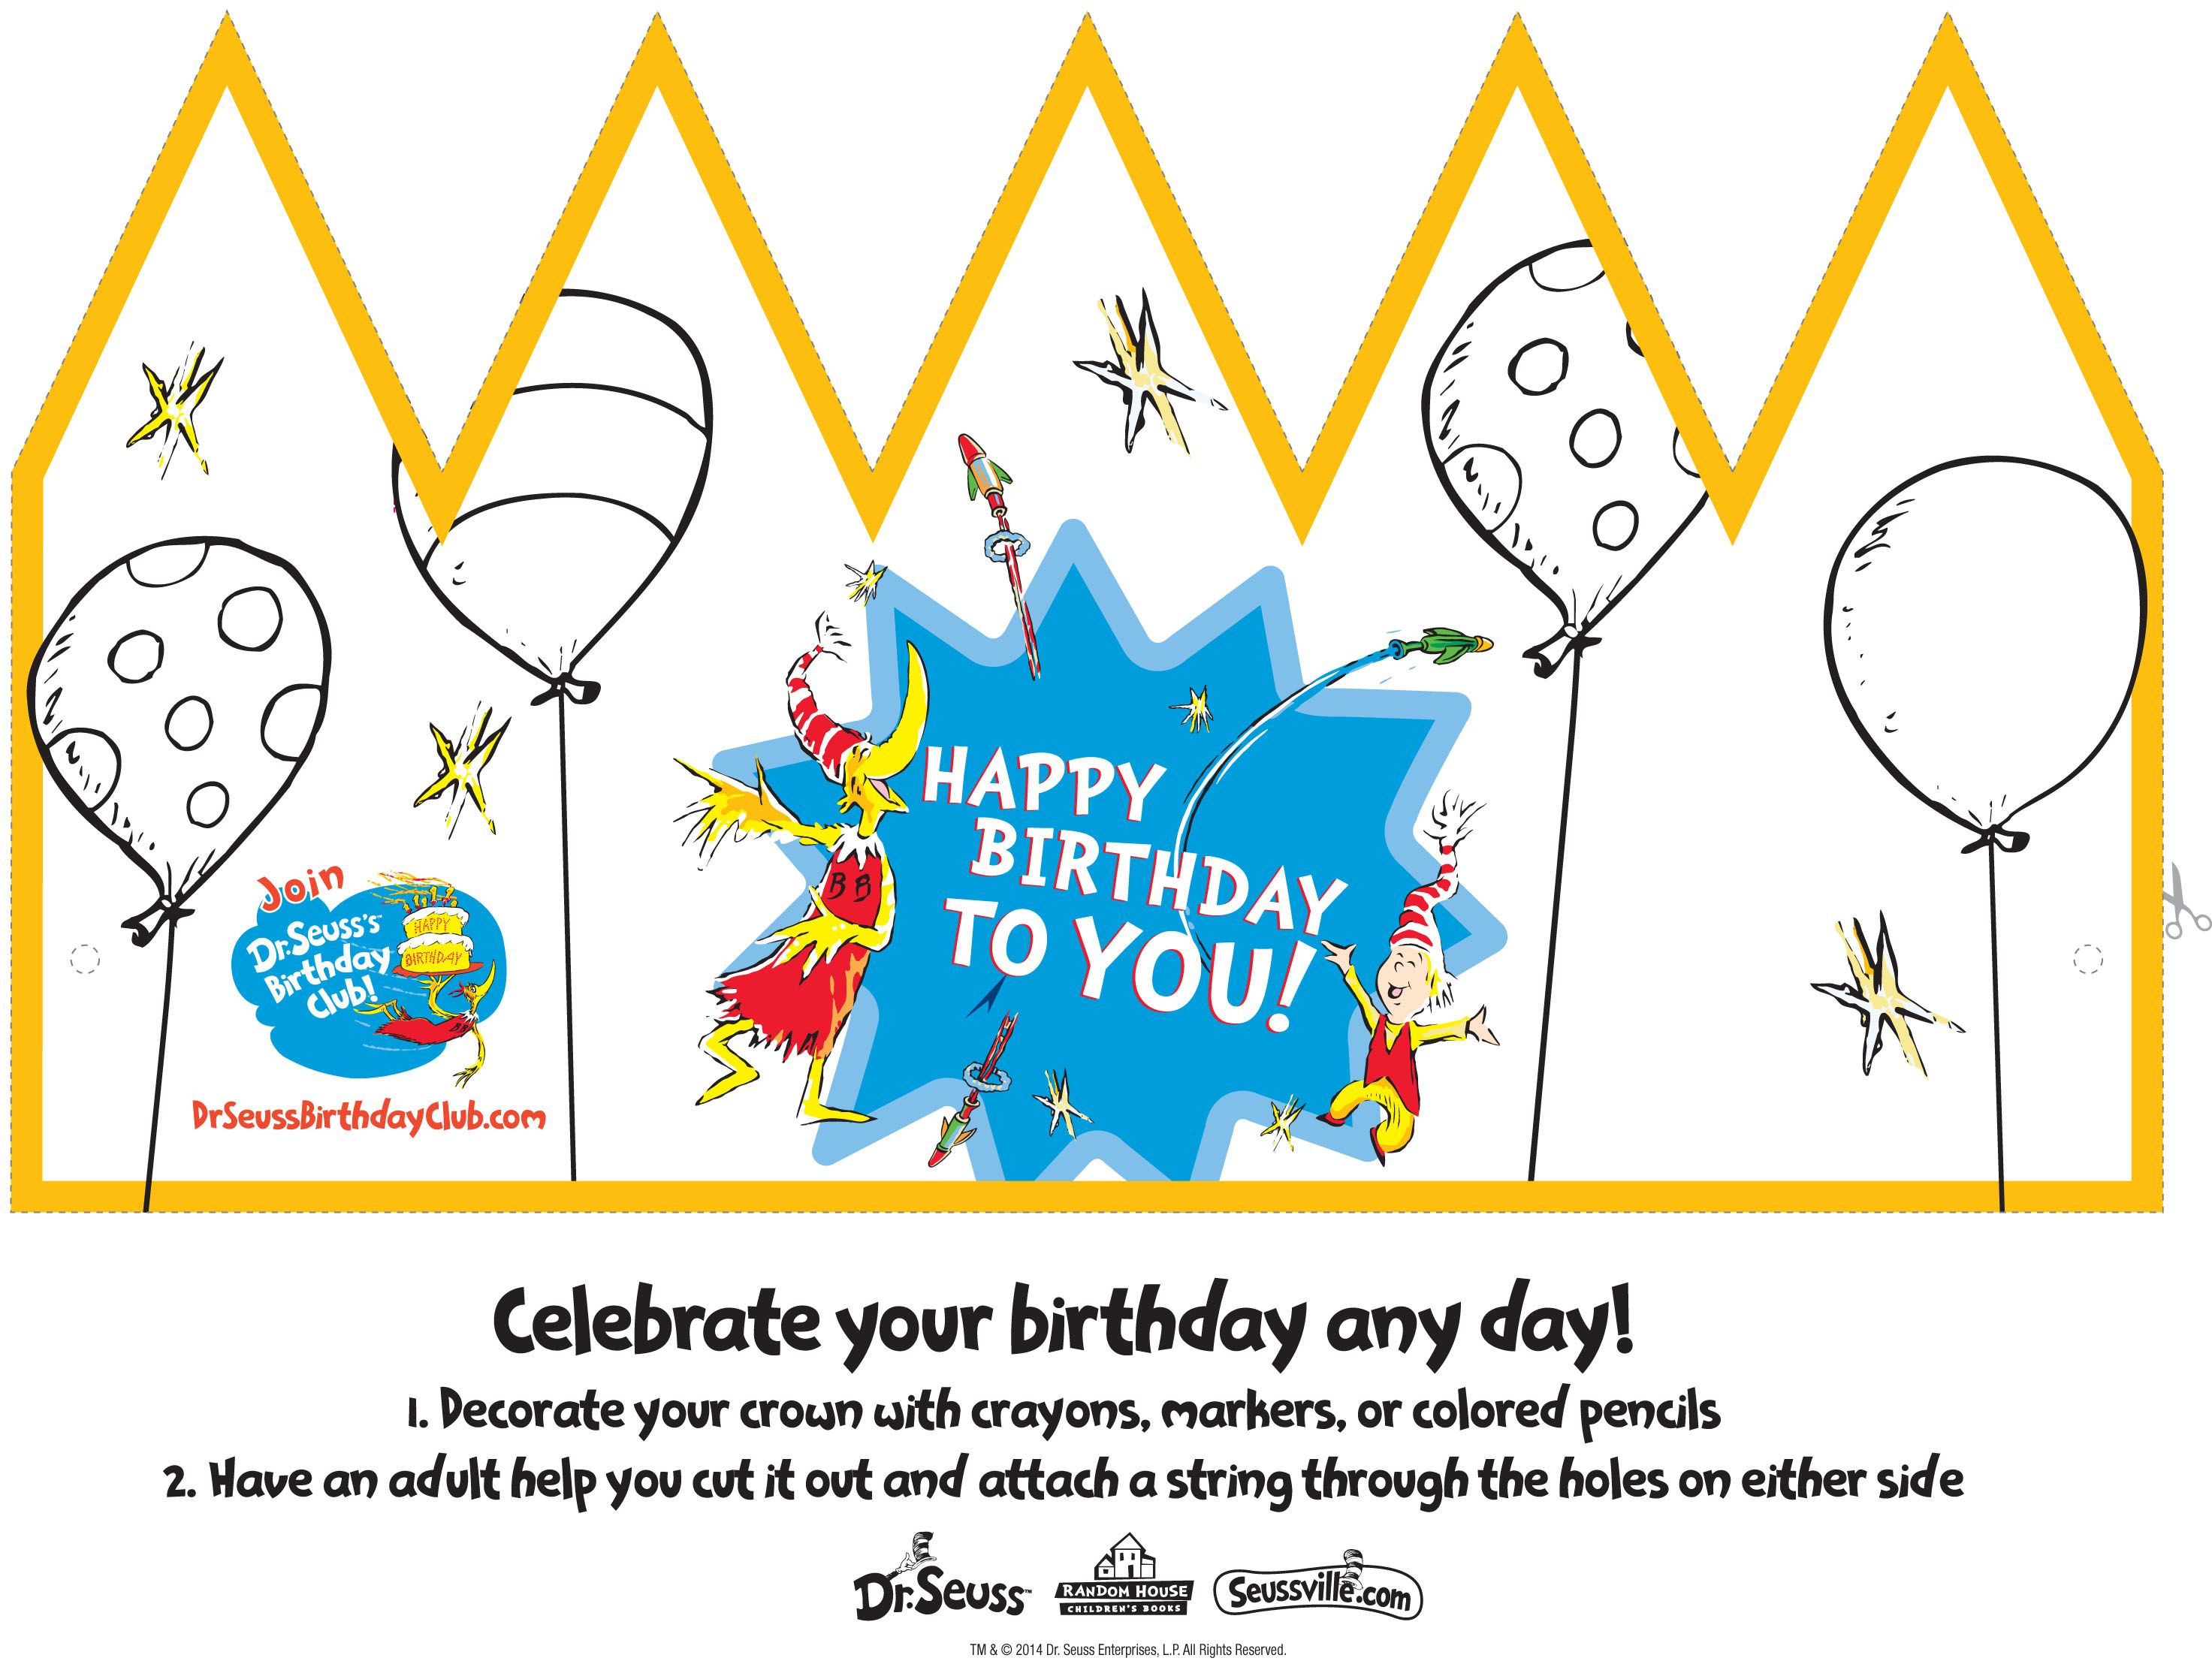 Make Your Own Dr Seuss Birthday Crown